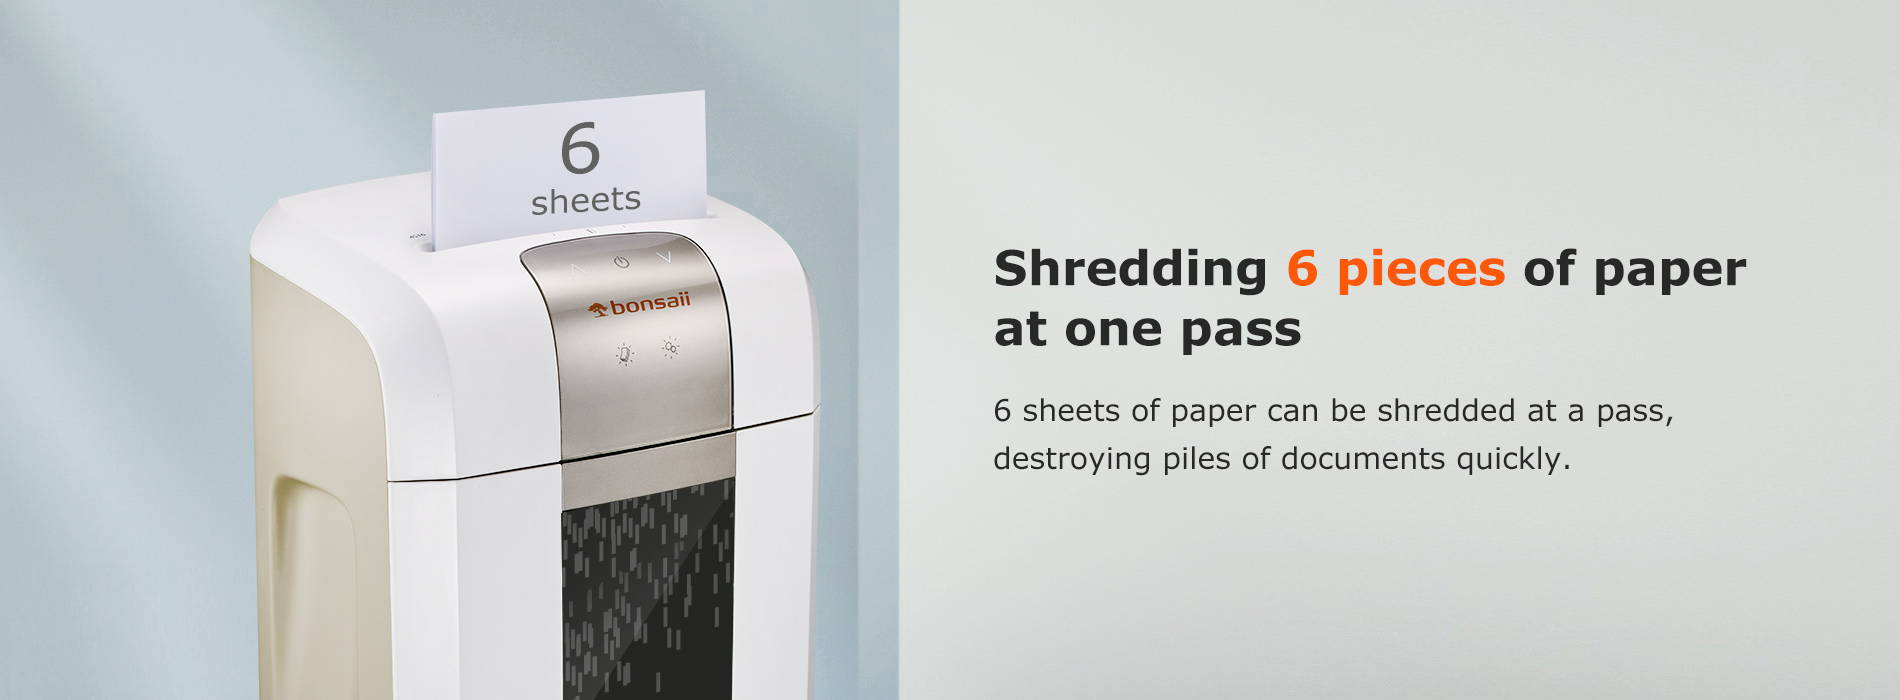 Shredding 6 pieces of paper at one pass 6 sheets of paper can be shredded at a pass, destroying piles of documents quickly.